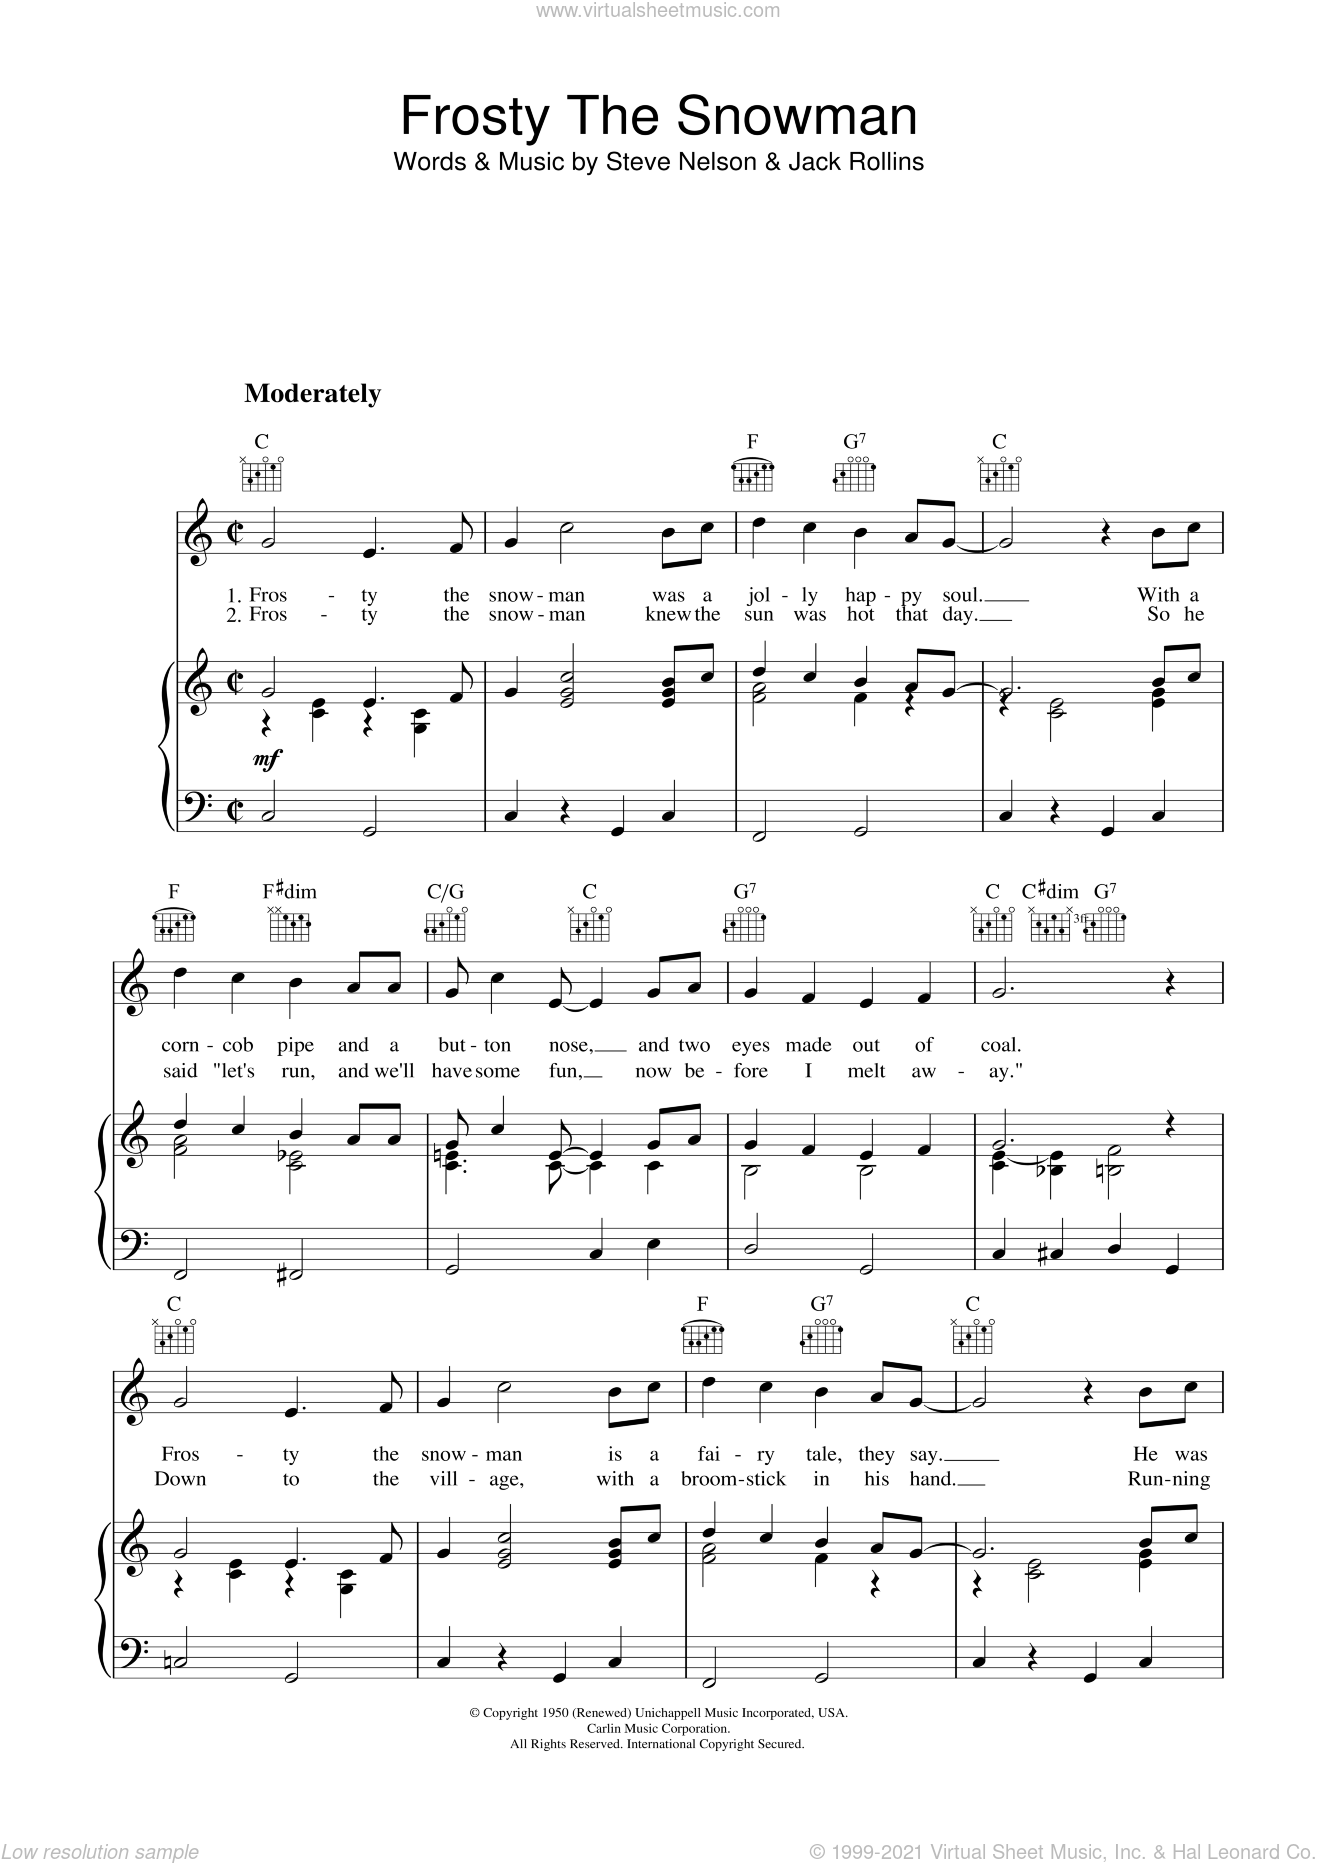 Frosty The Snowman sheet music for voice, piano or guitar by Gene Autry, Jack Rollins and Steve Nelson, intermediate skill level